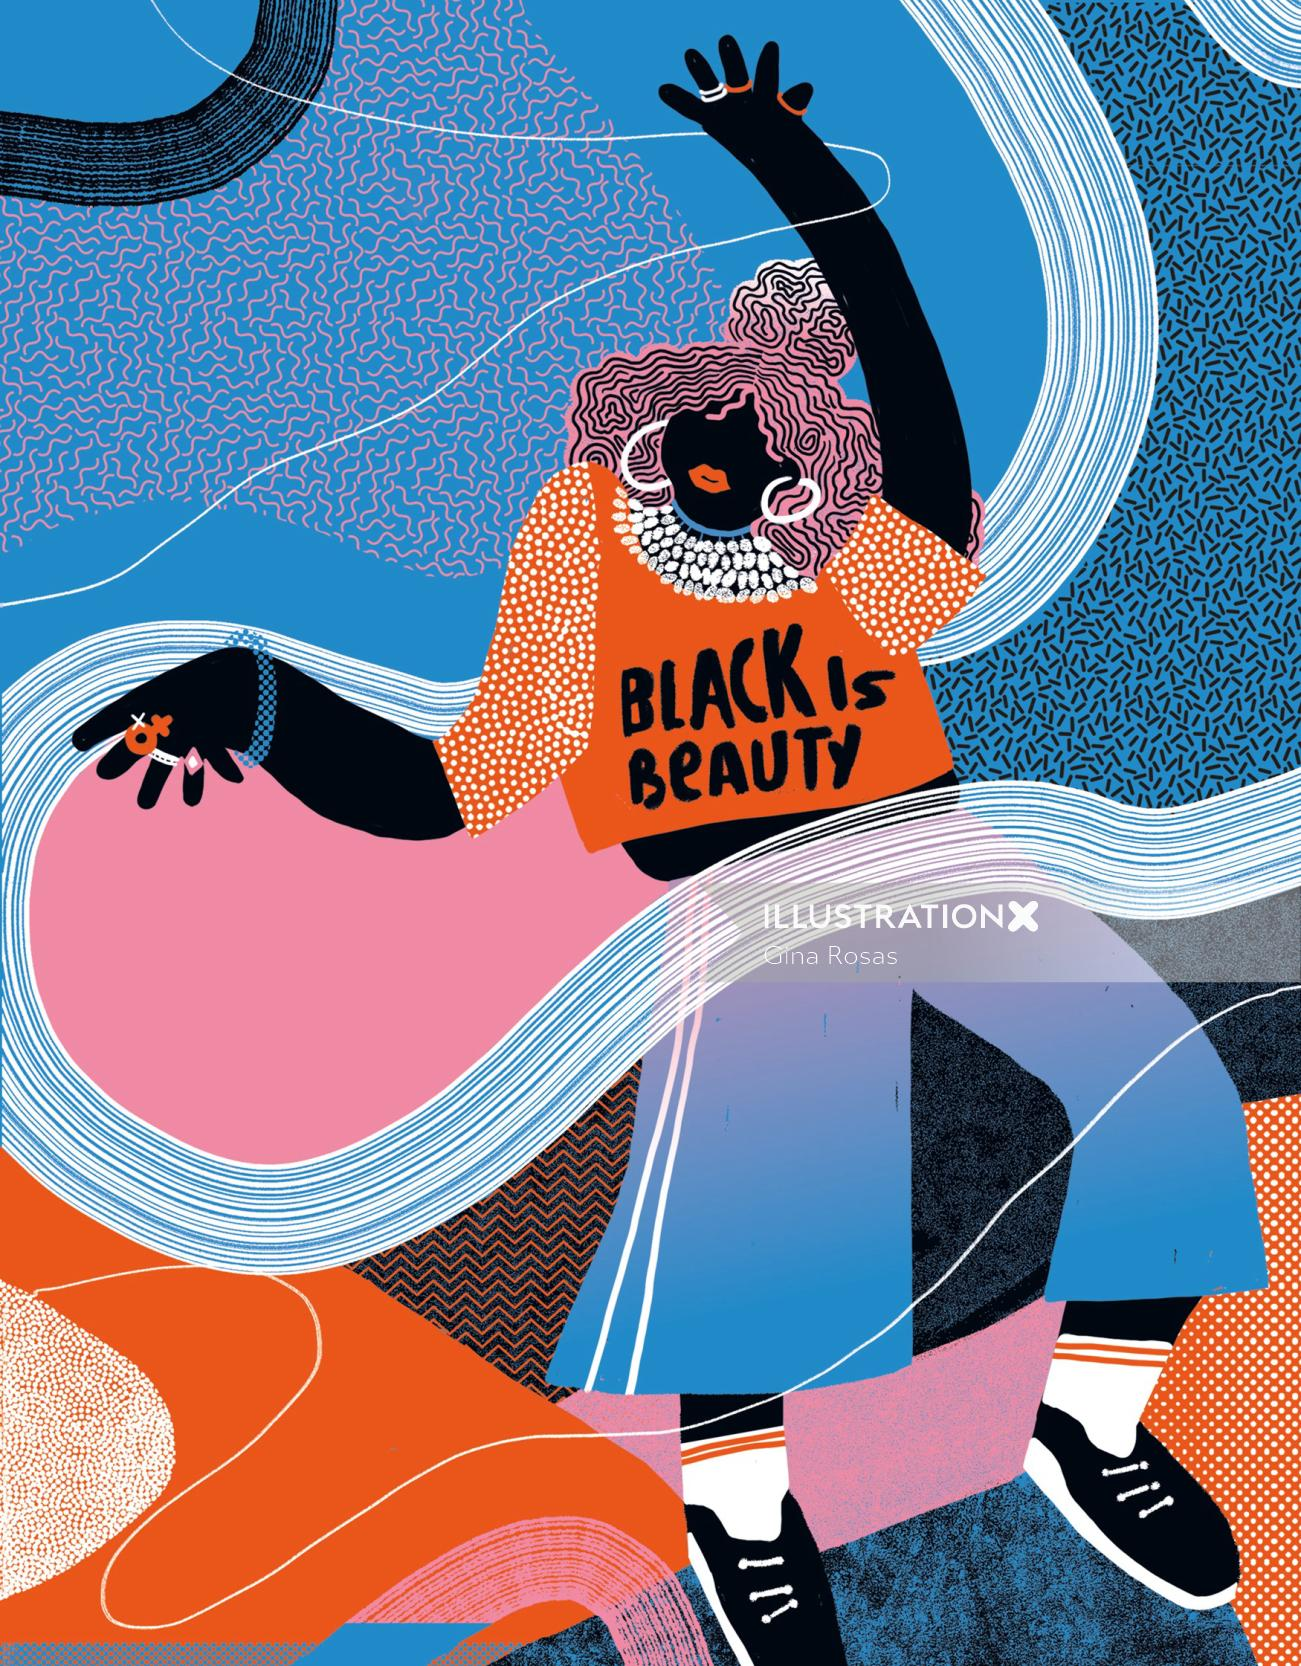 Conceptual illustration of black is beauty